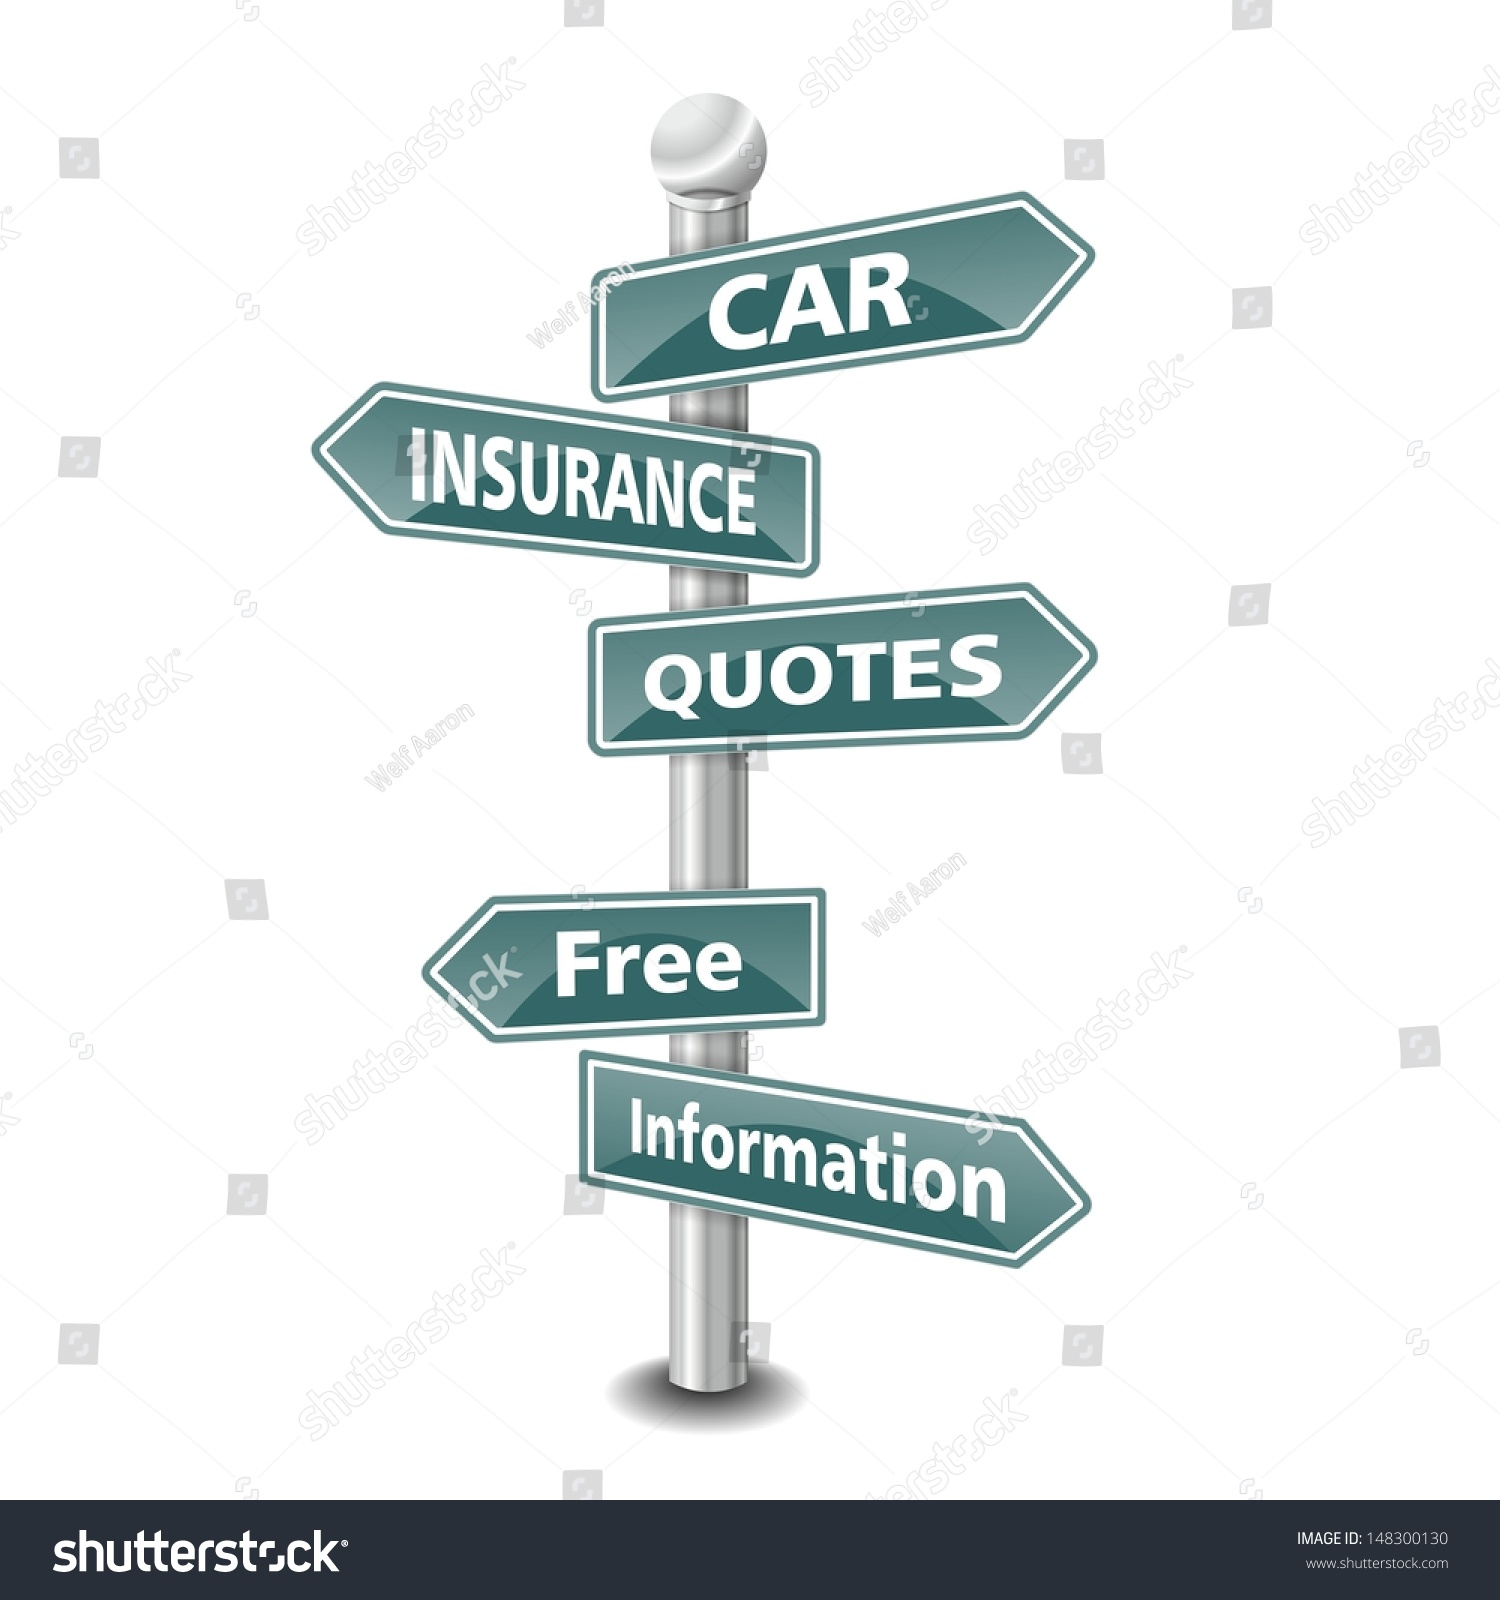 The Best Insurance Quotes: Words Car Insurance Quotes Icon Designed Stock Photo